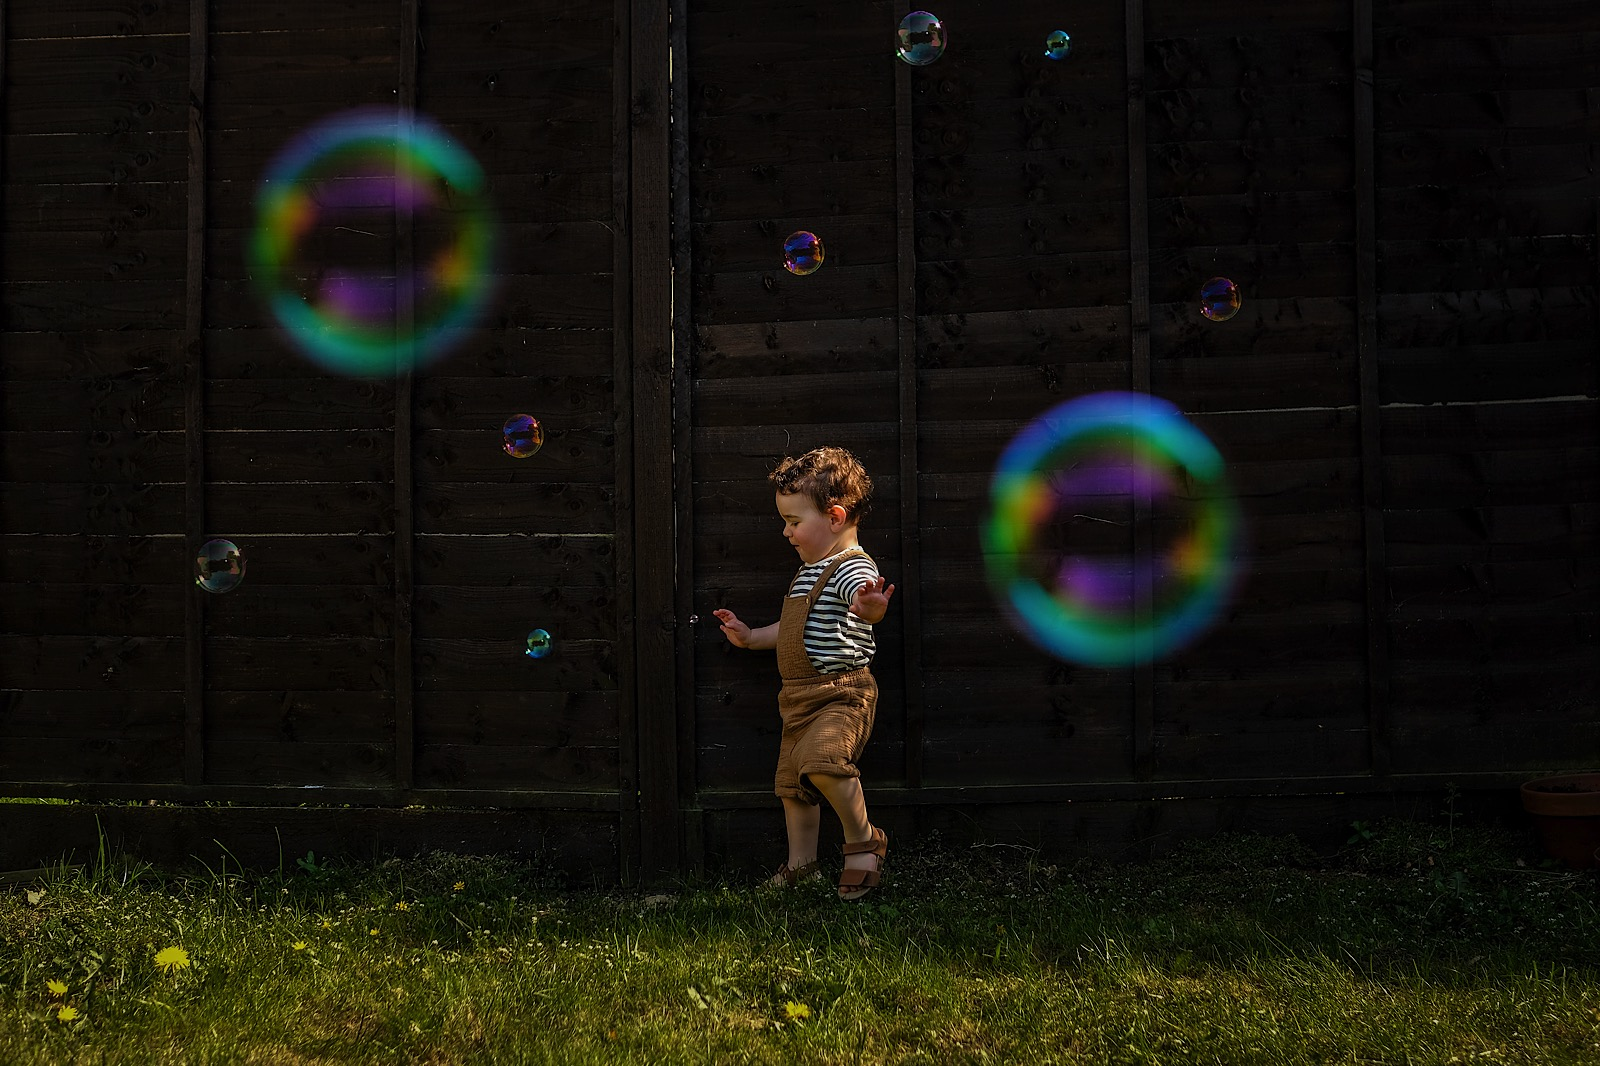 little boy in dungarees running chasing bubbles in garden during covid-19 pandemic